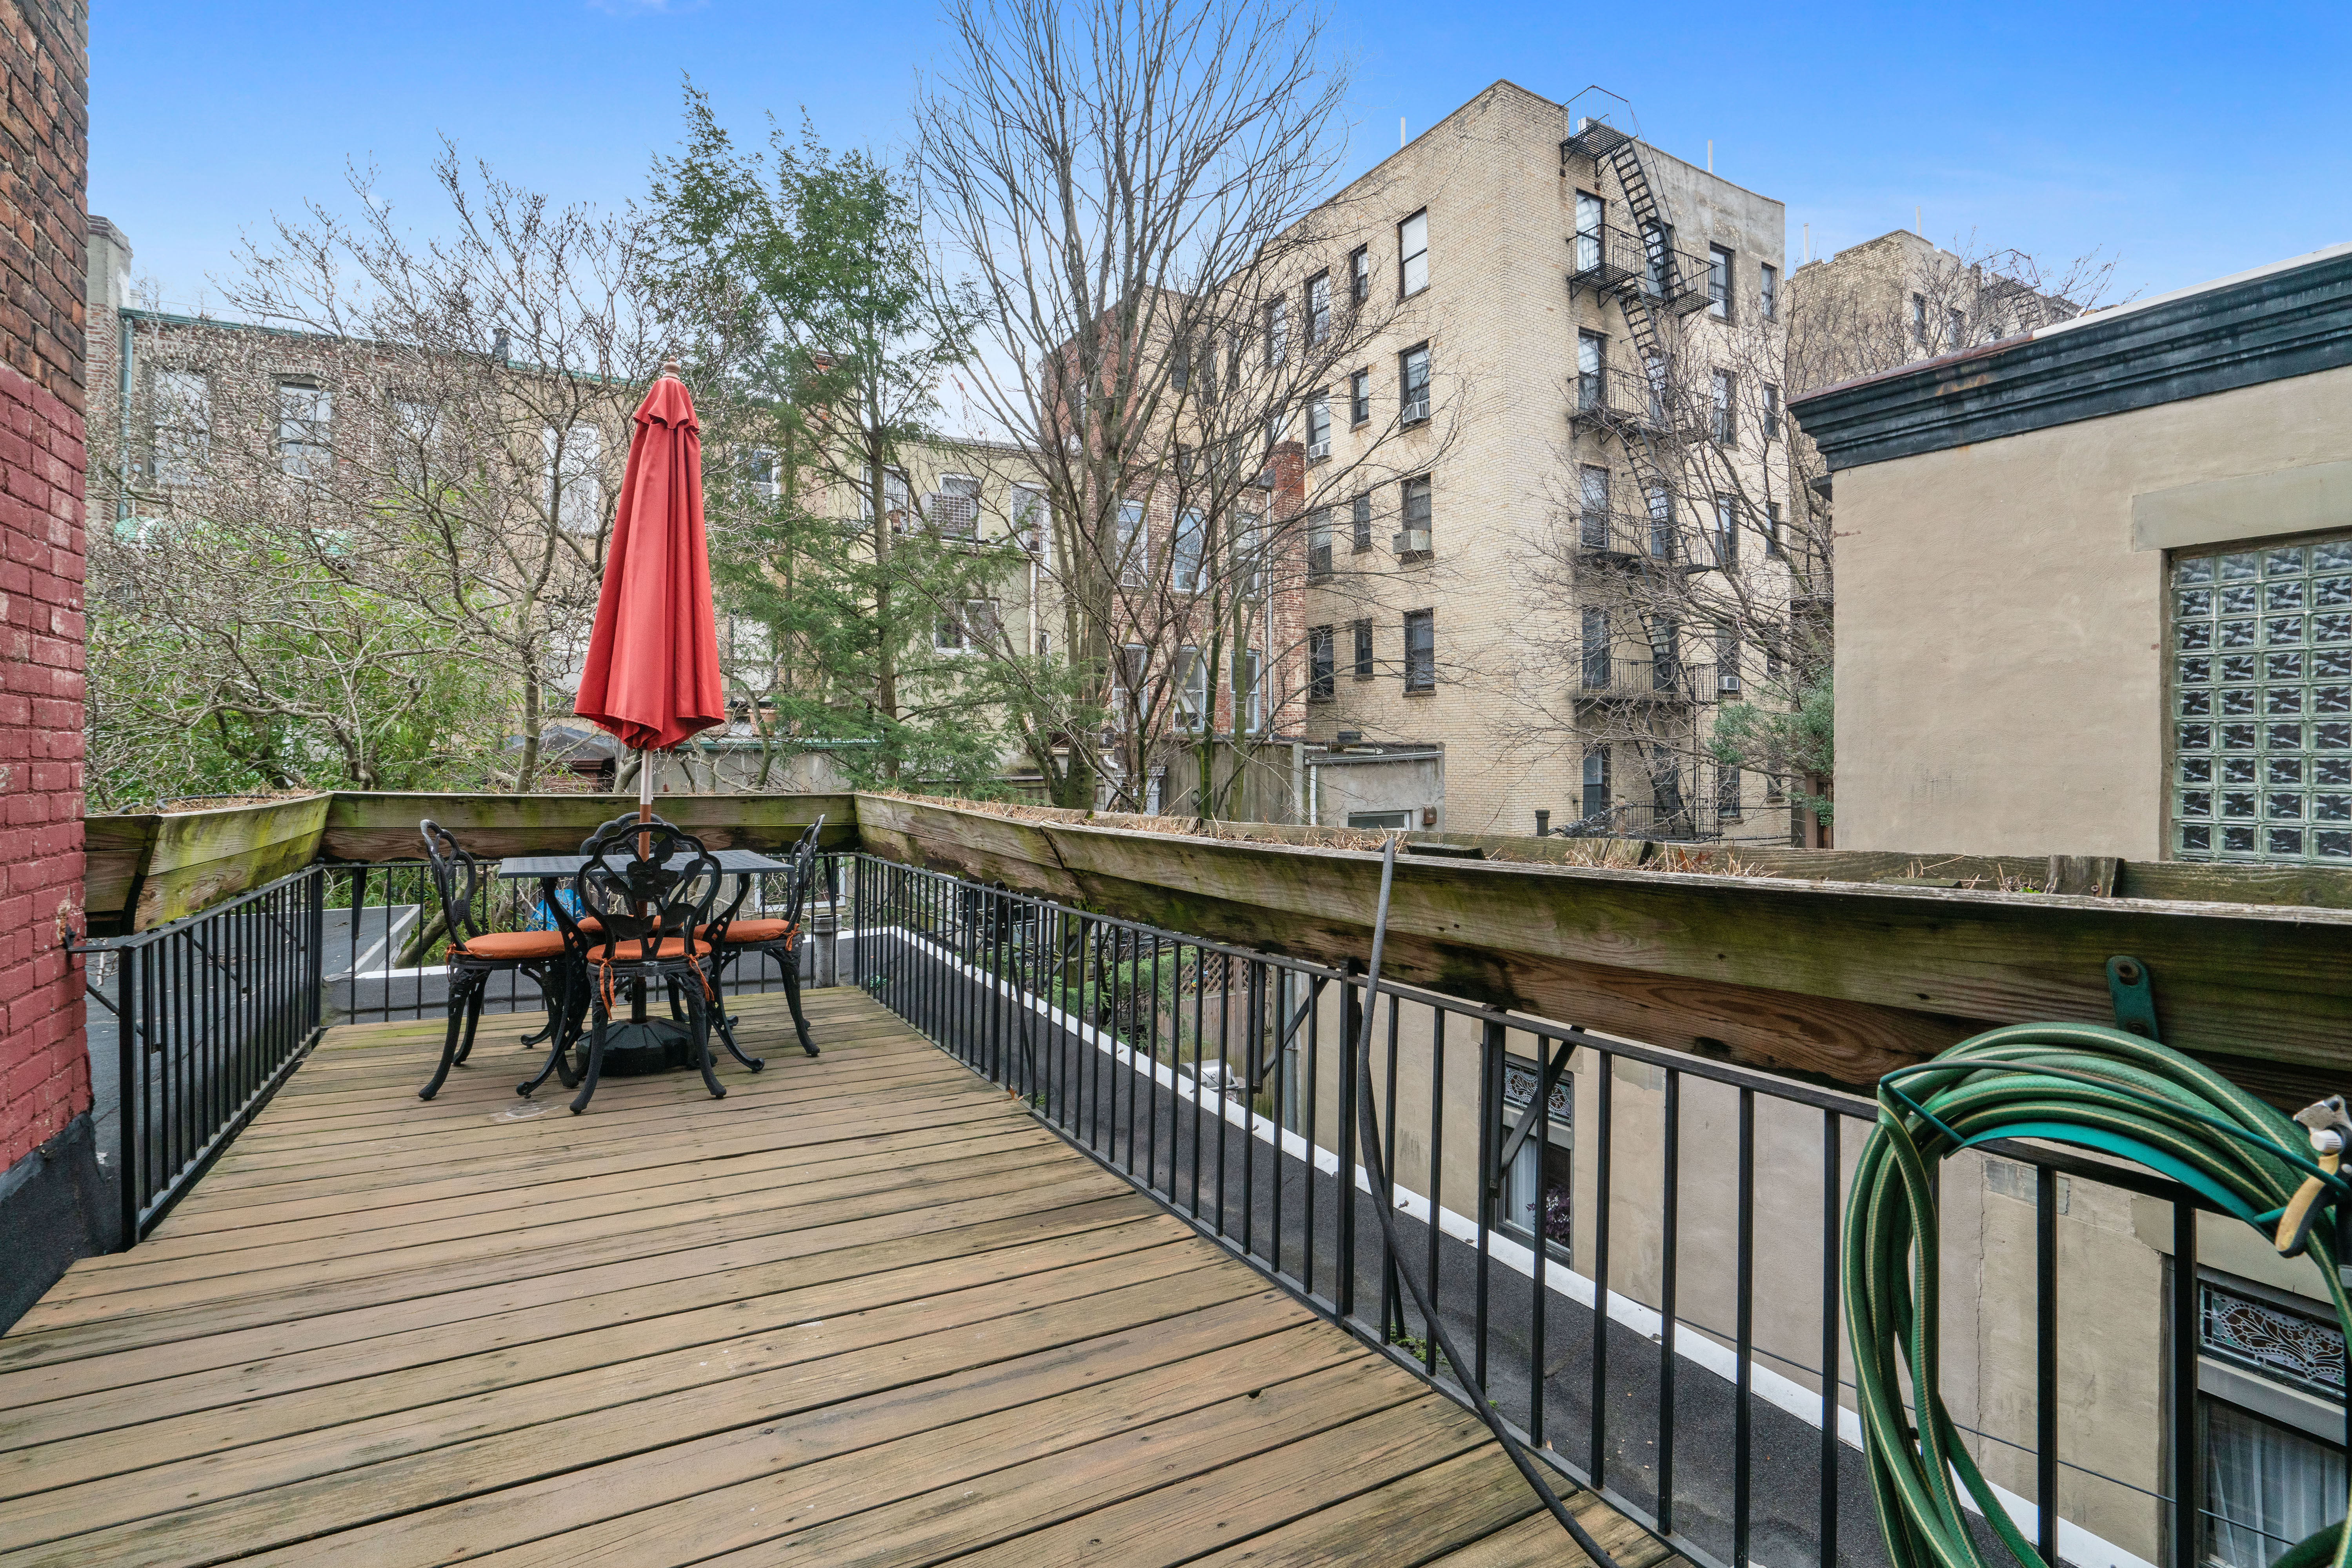 594 2nd St Photo 5 - BROWNSTONER-LISTING-47512a55ccfbbeb19b0a8fb315f62163